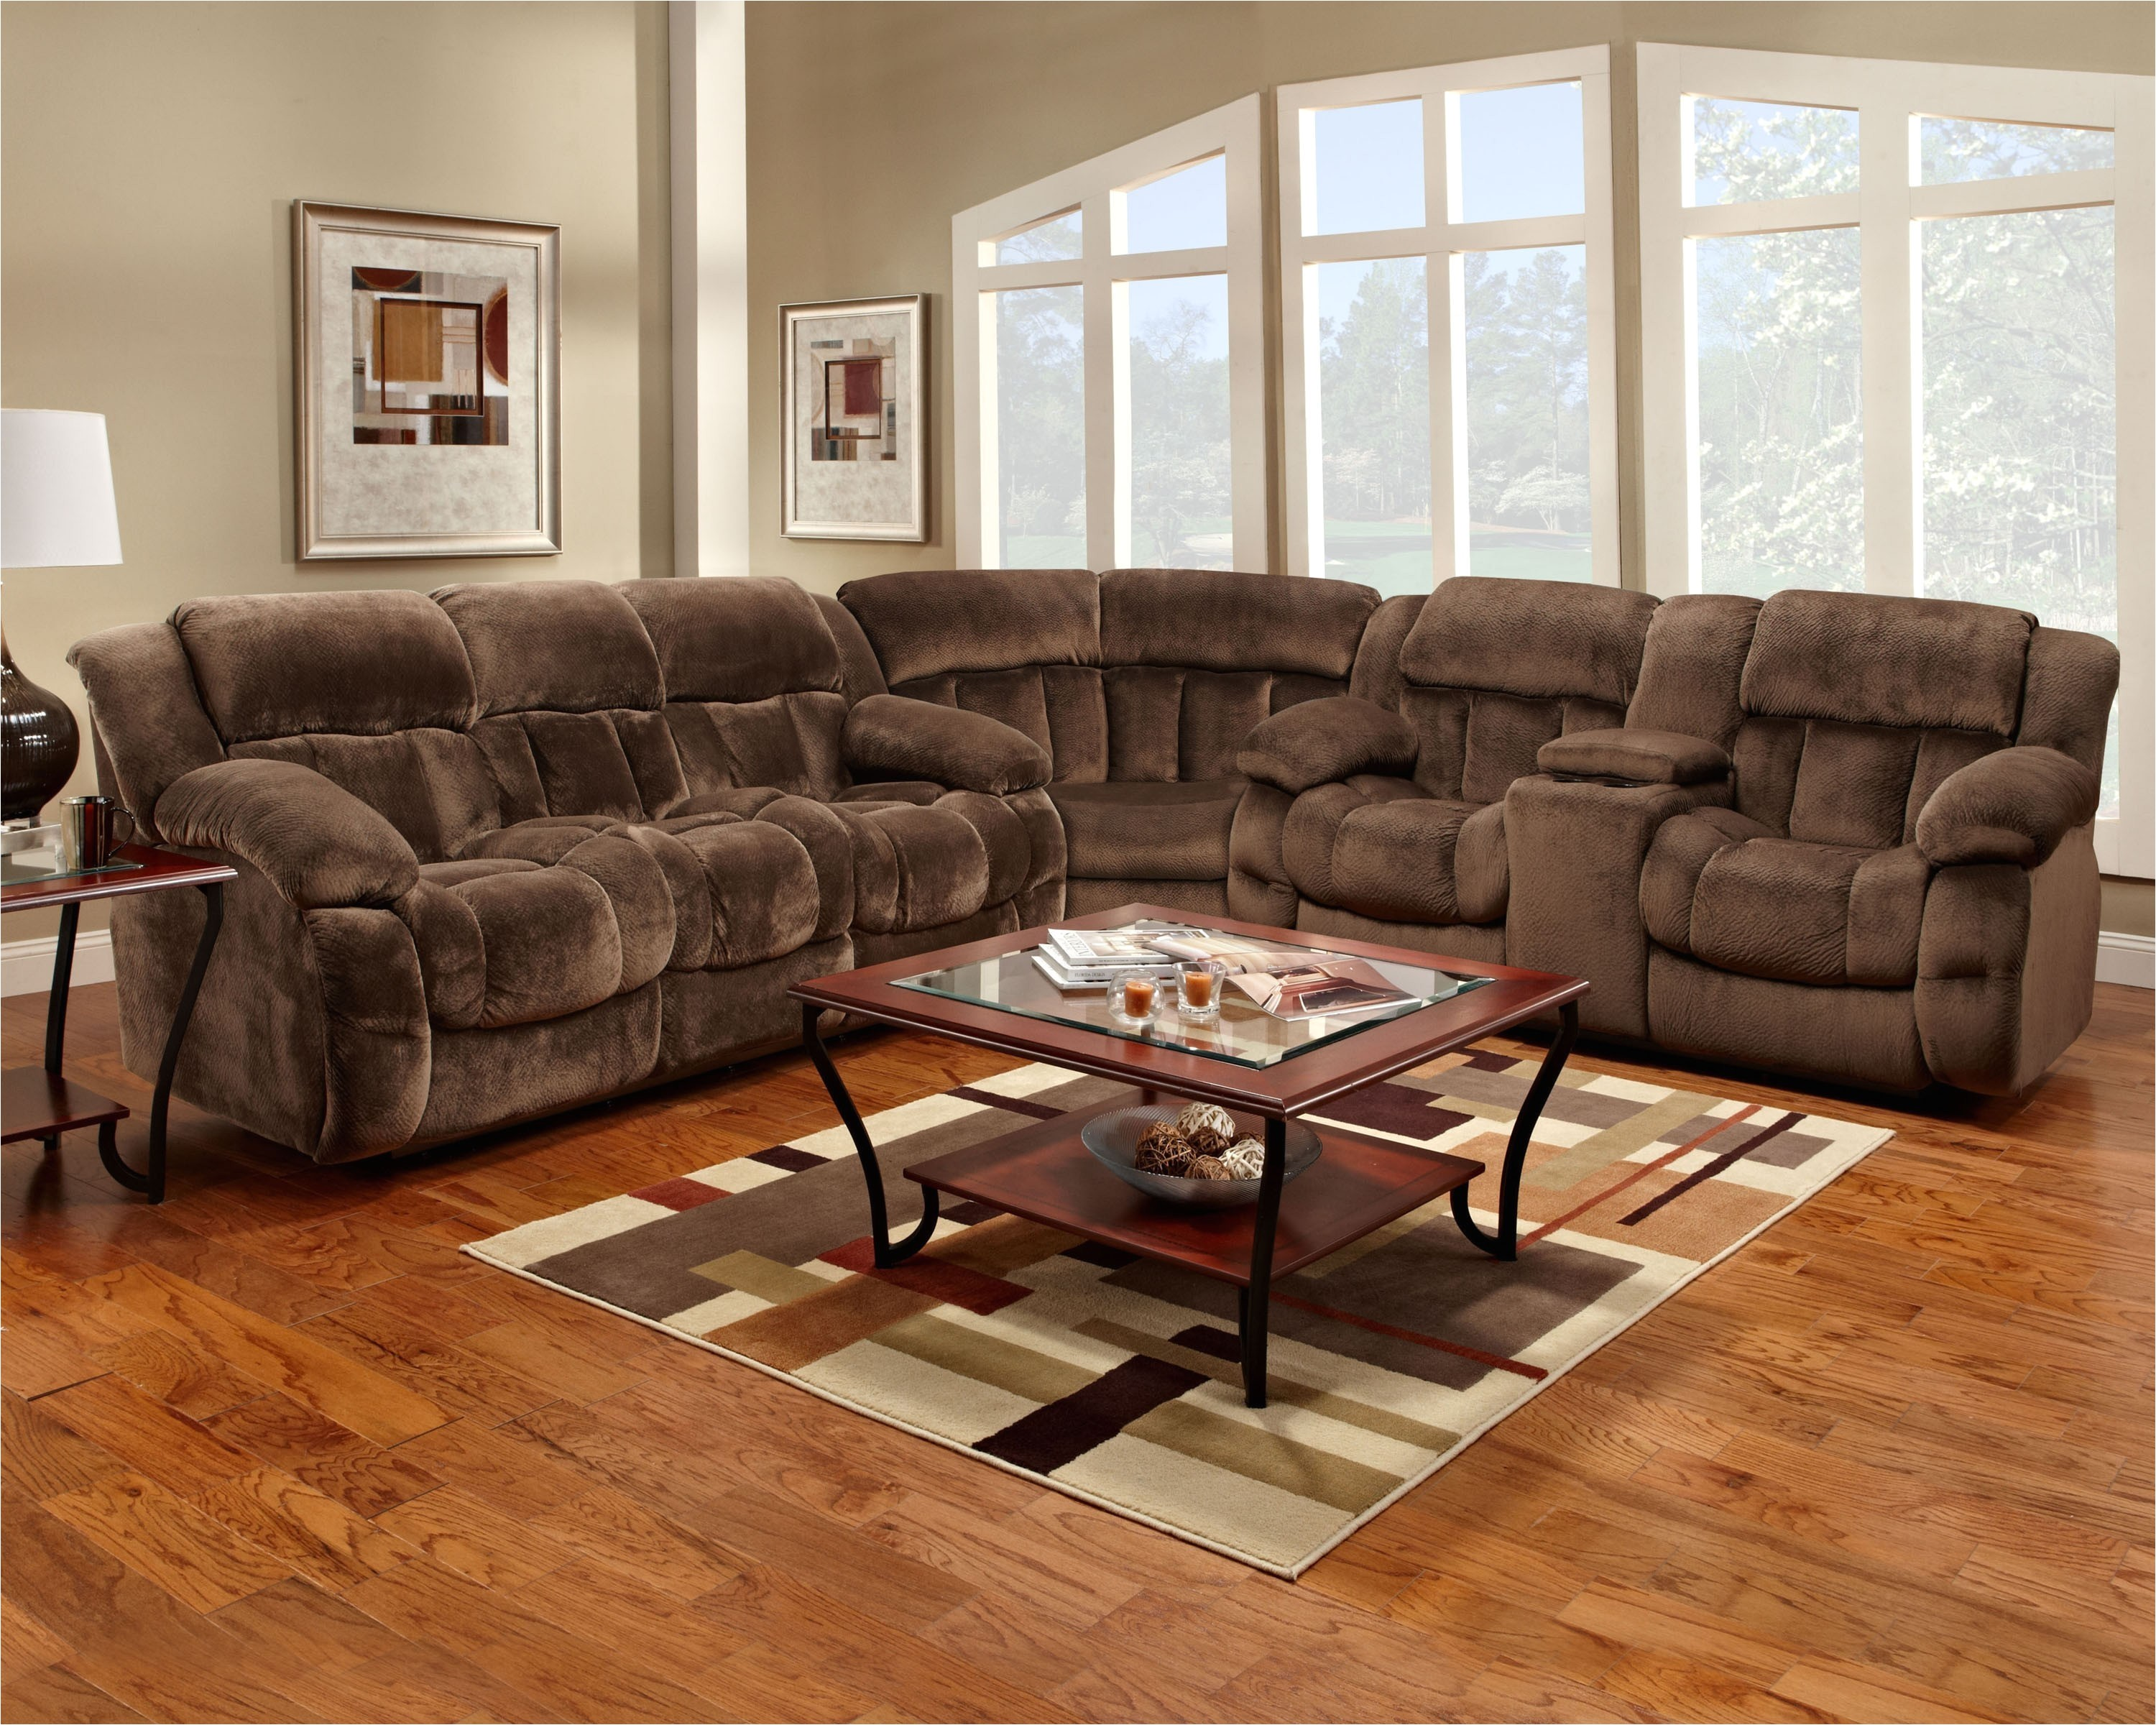 furniture simple unclaimed furniture store home design great with unclaimed furniture 14581